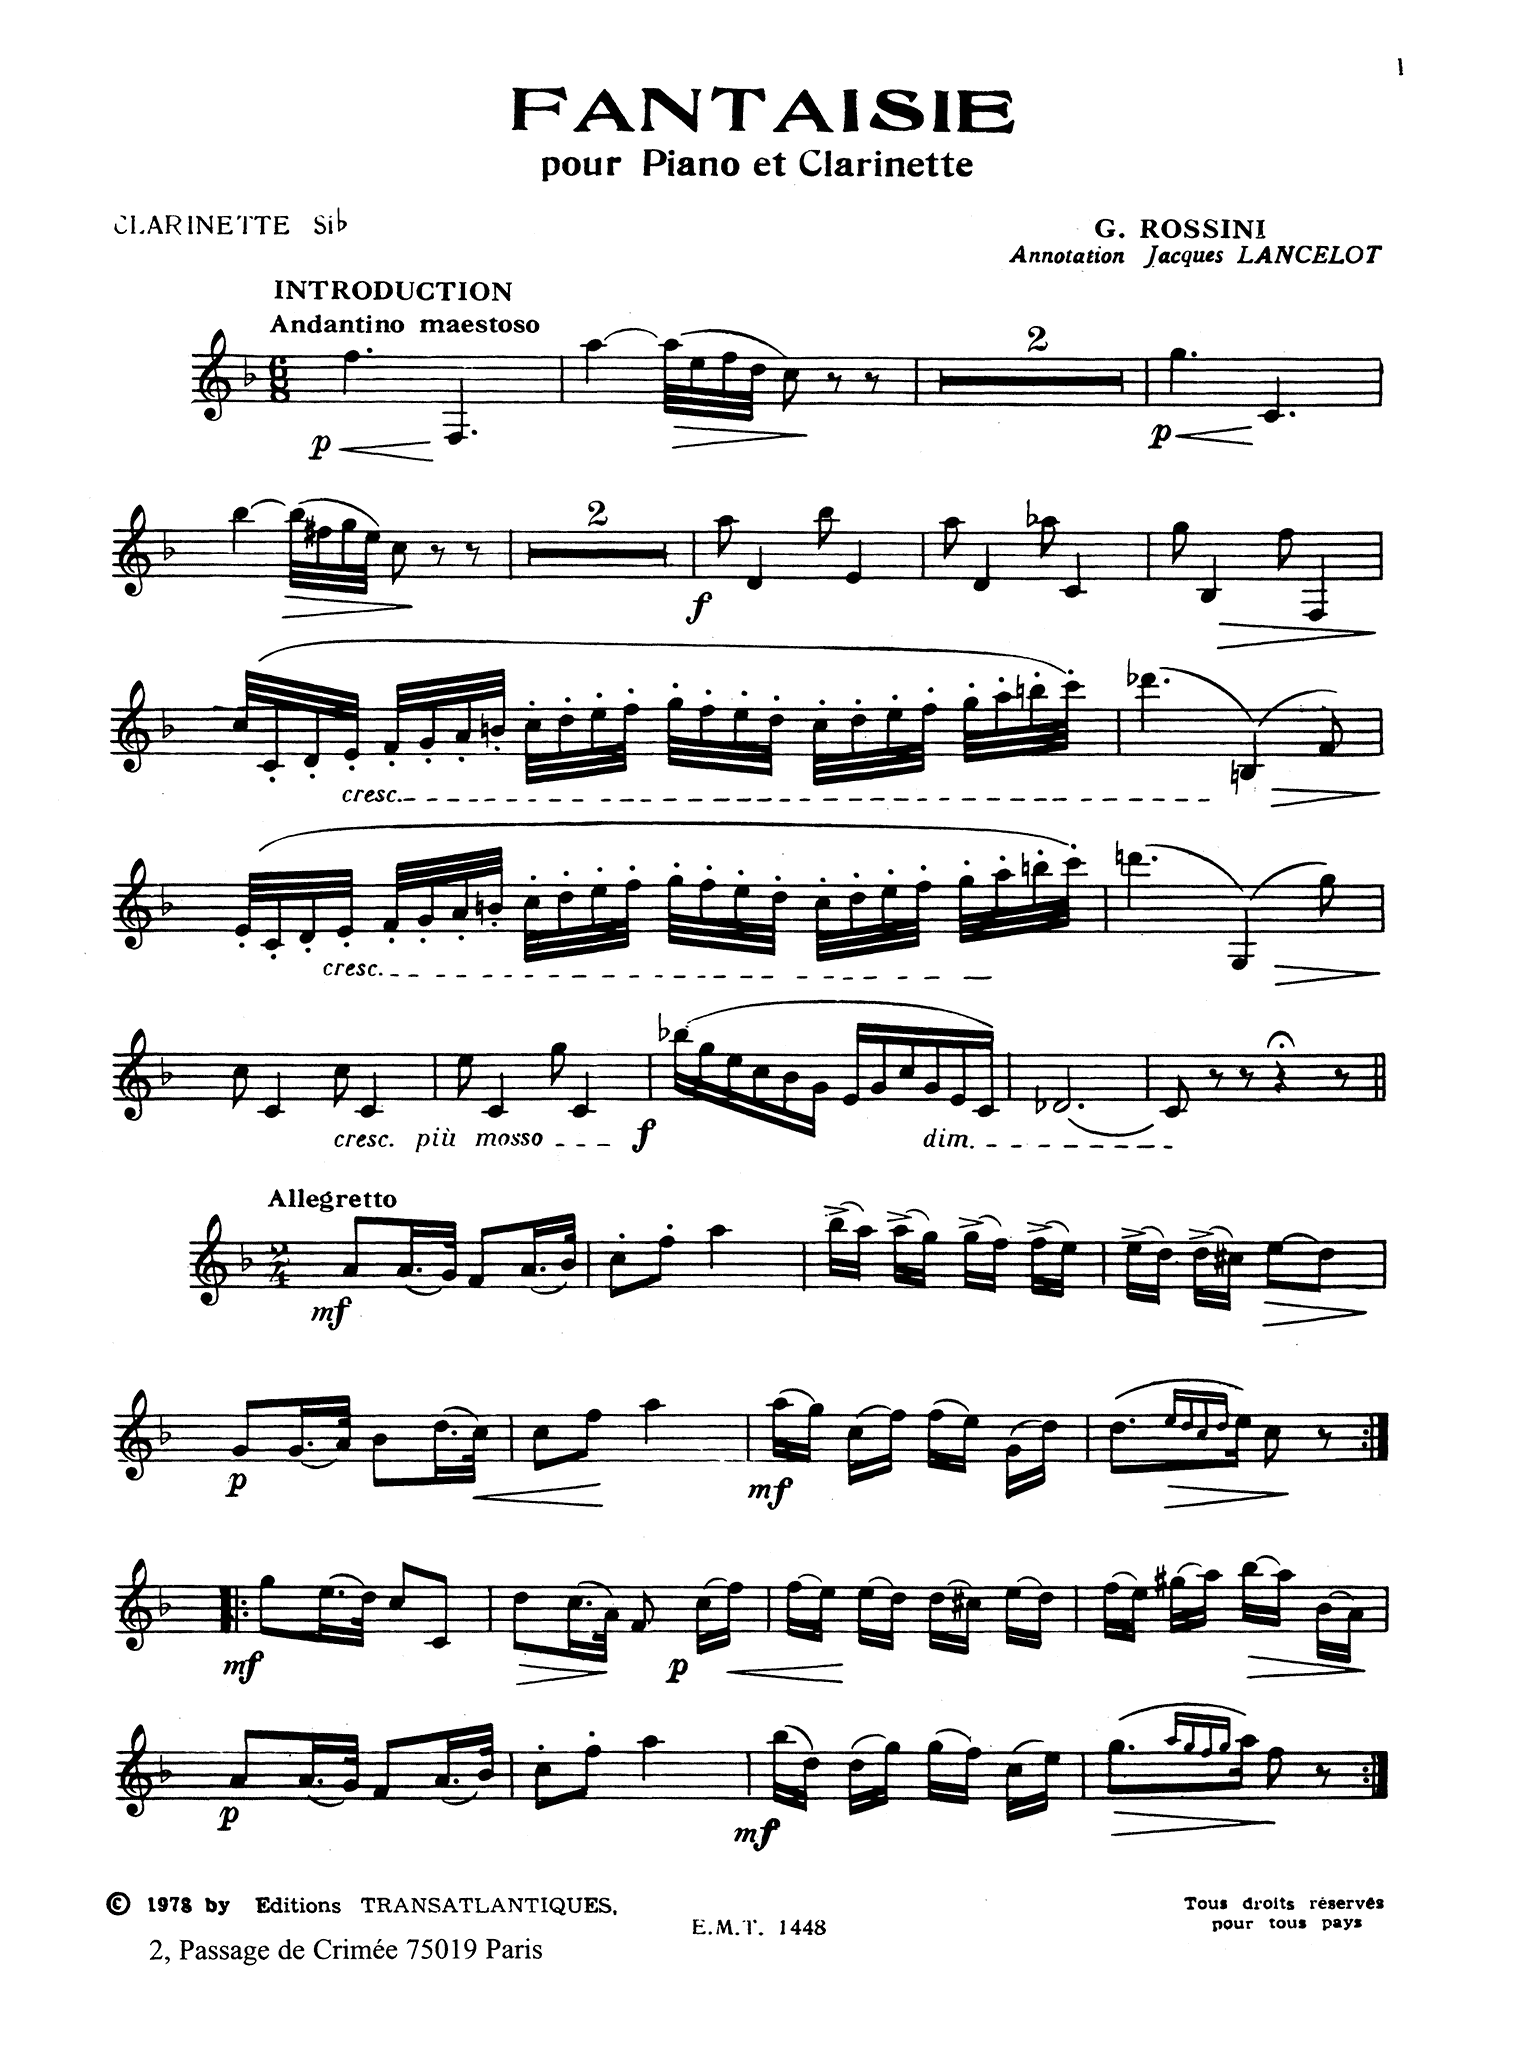 Rossini Fantasy Clarinet part